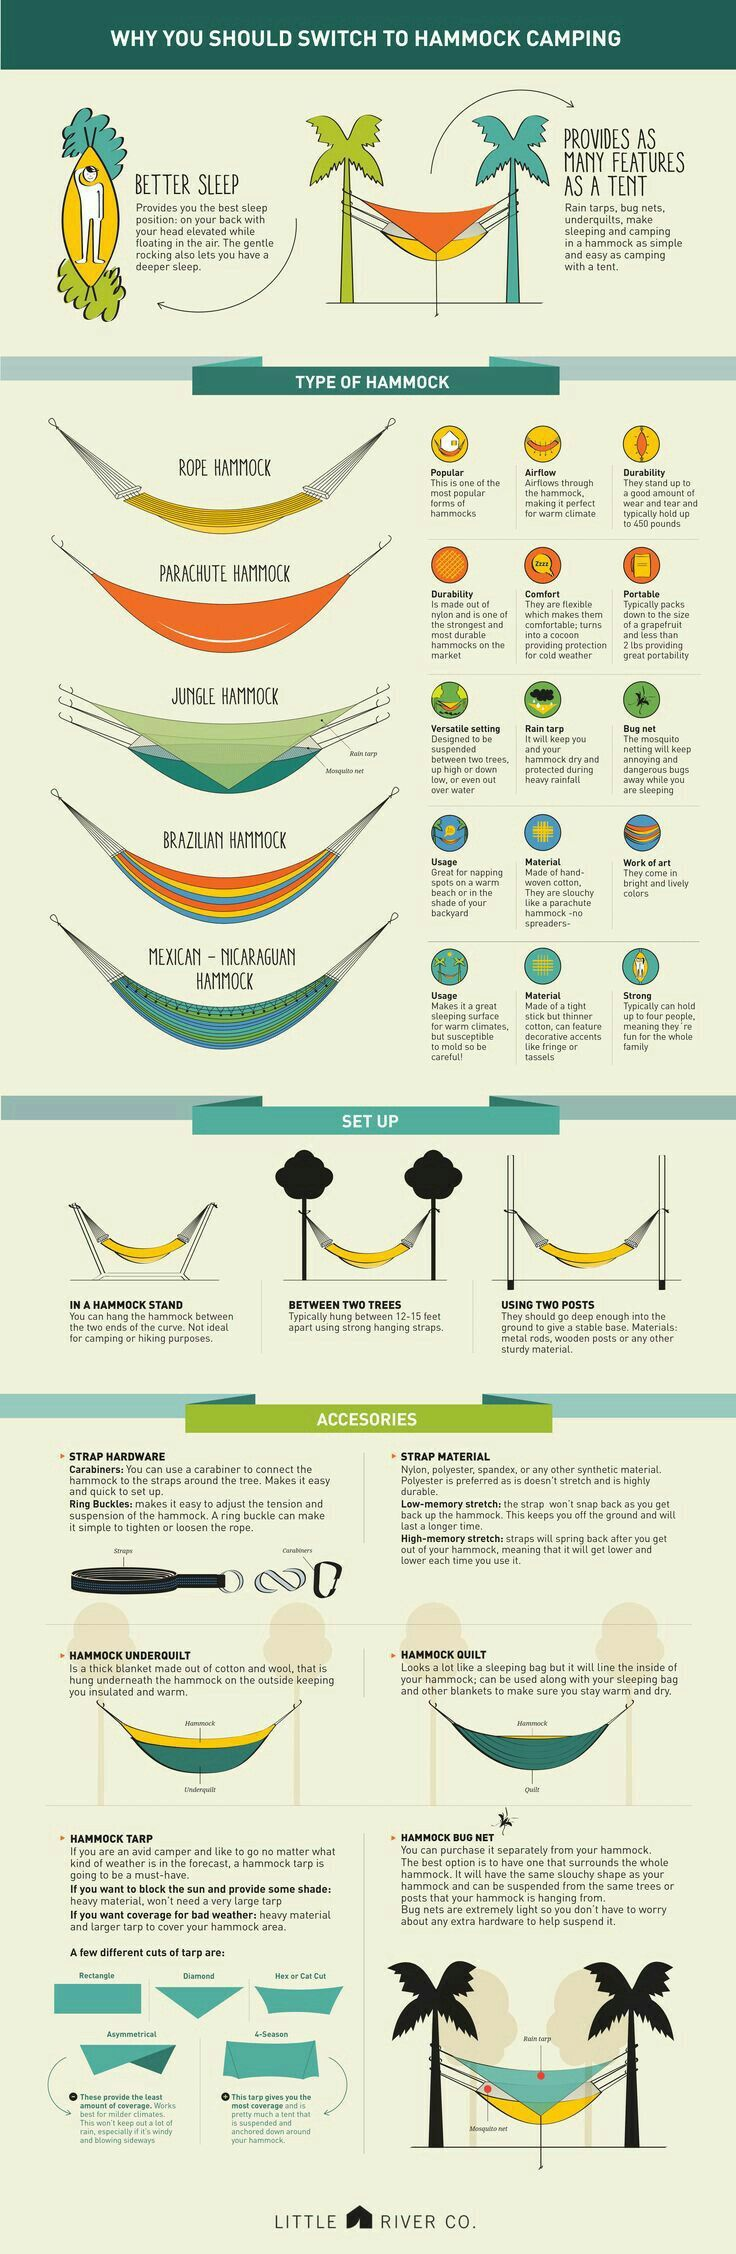 infographic   why switch to hammock camping  tech week life  71 best camping   hammock camping images on pinterest   camping      rh   pinterest